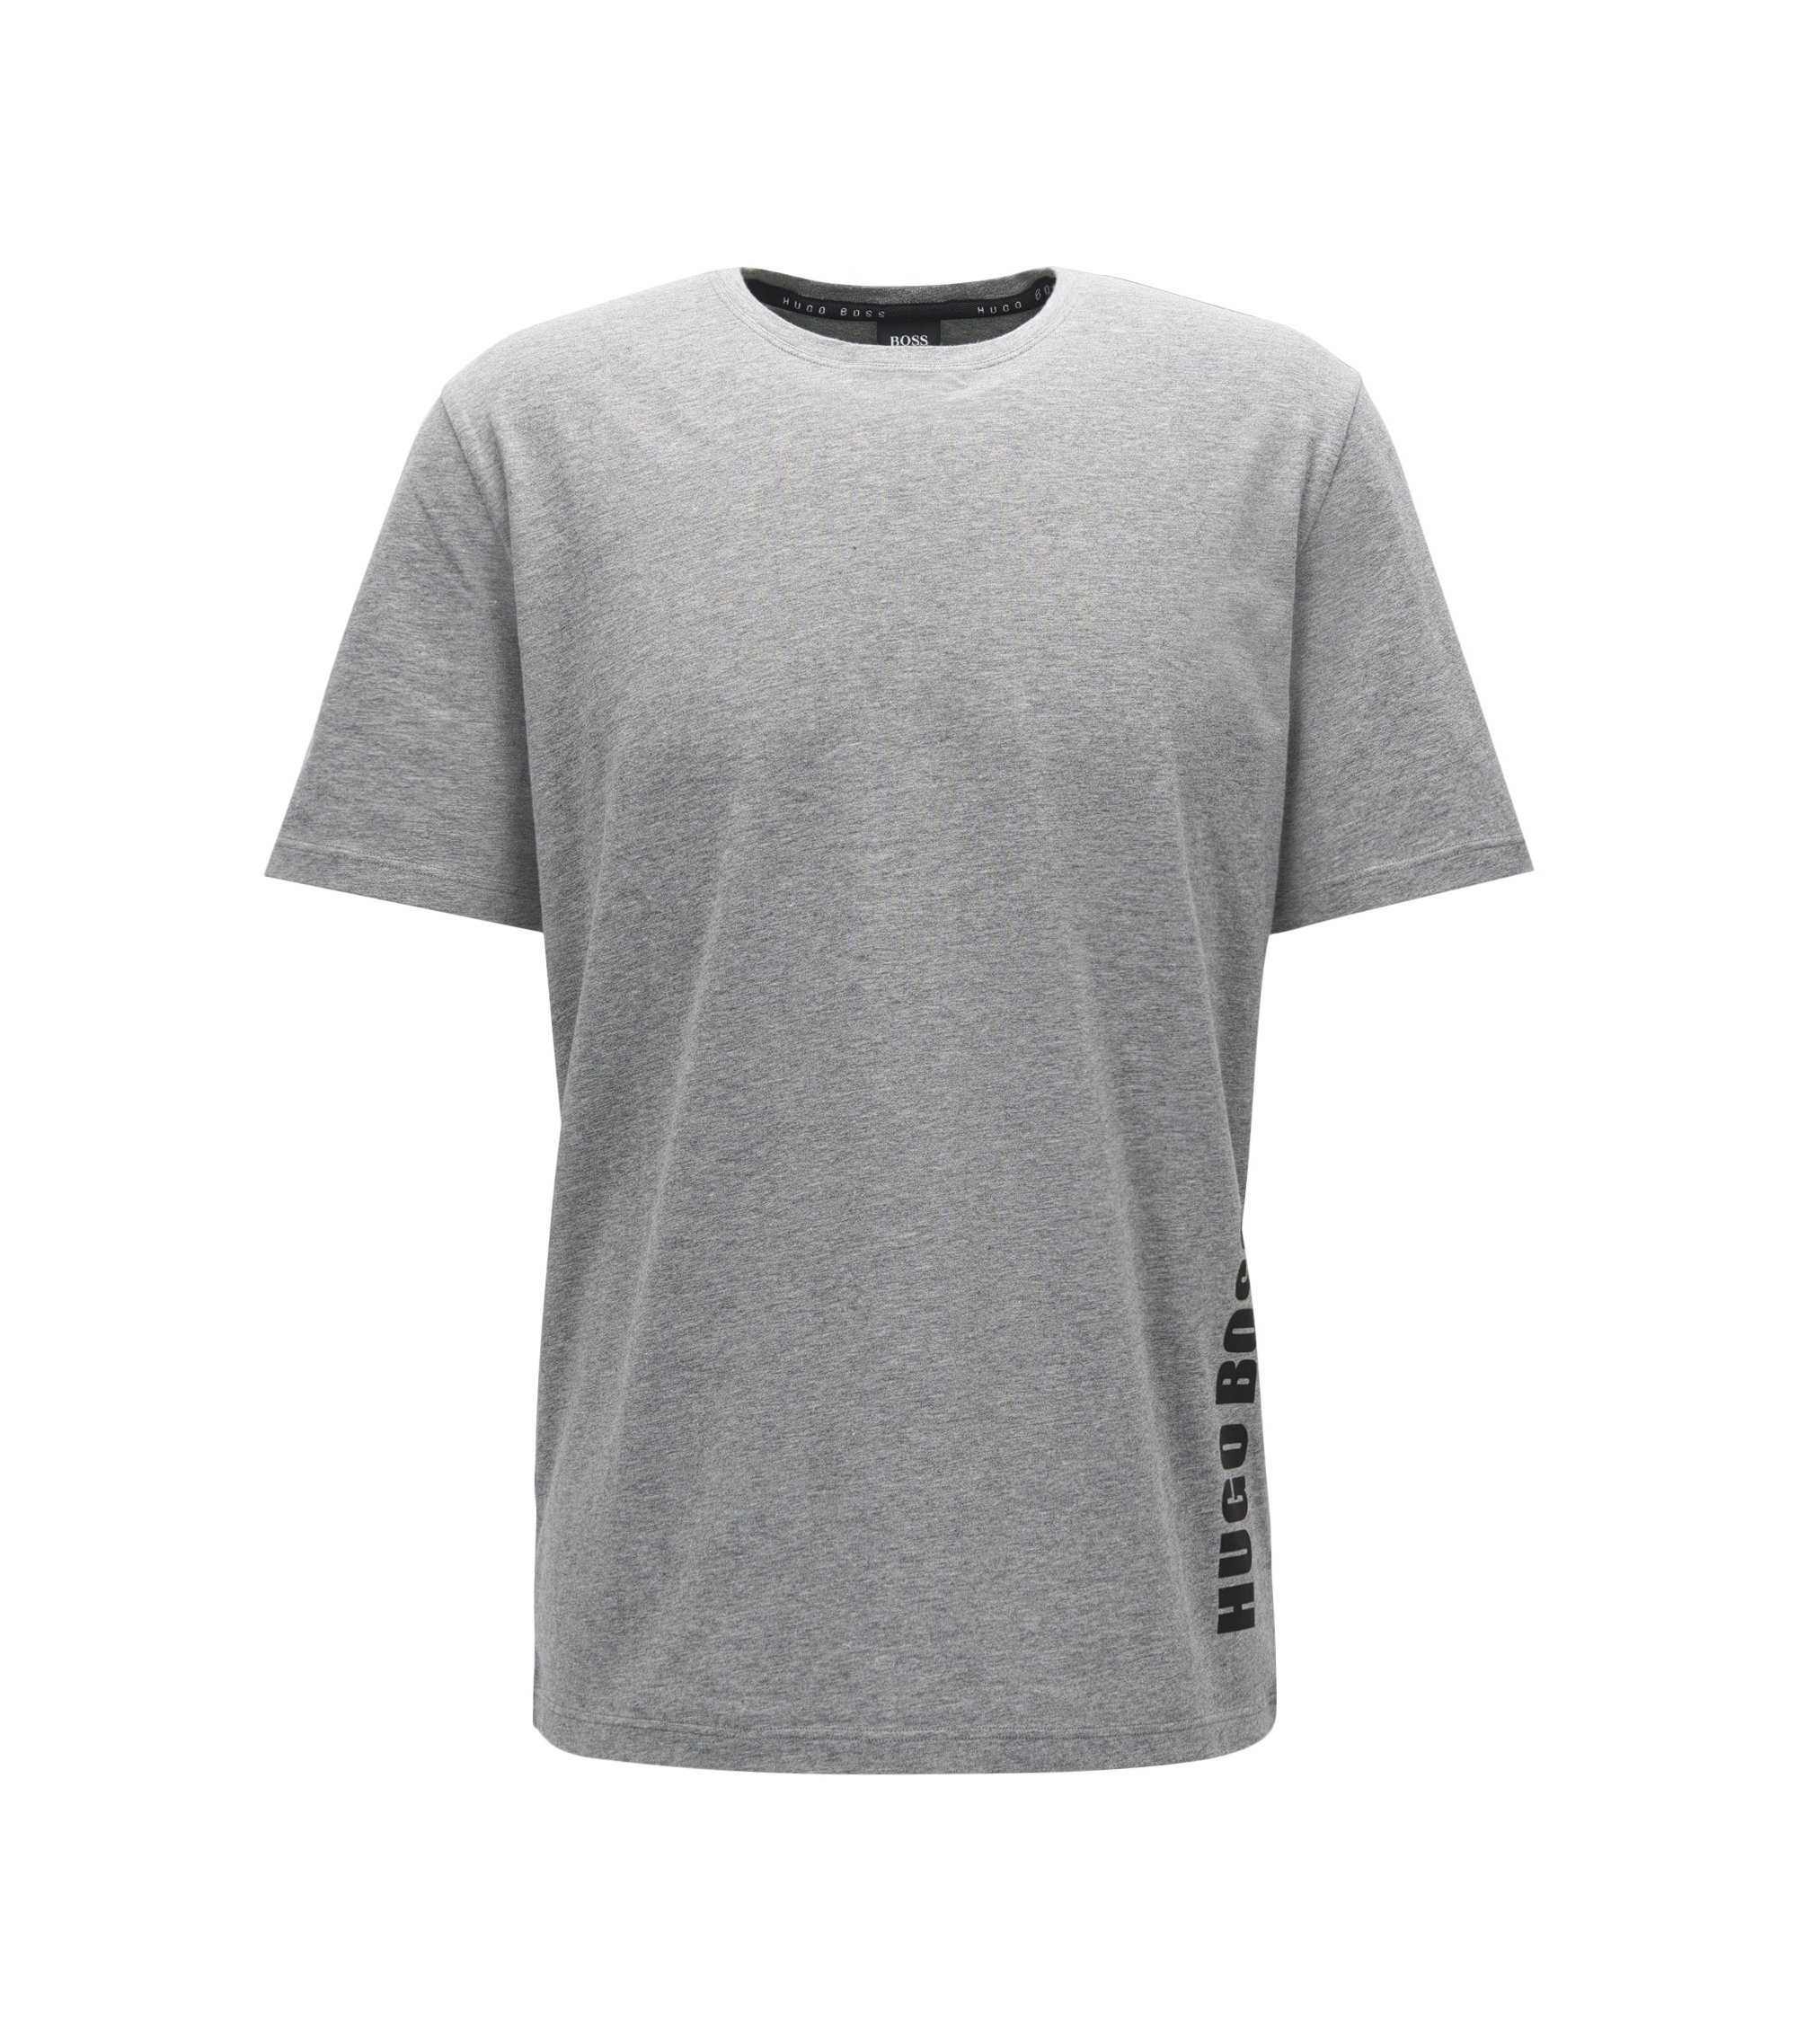 Camiseta de pijama regular fit en punto sencillo, Gris